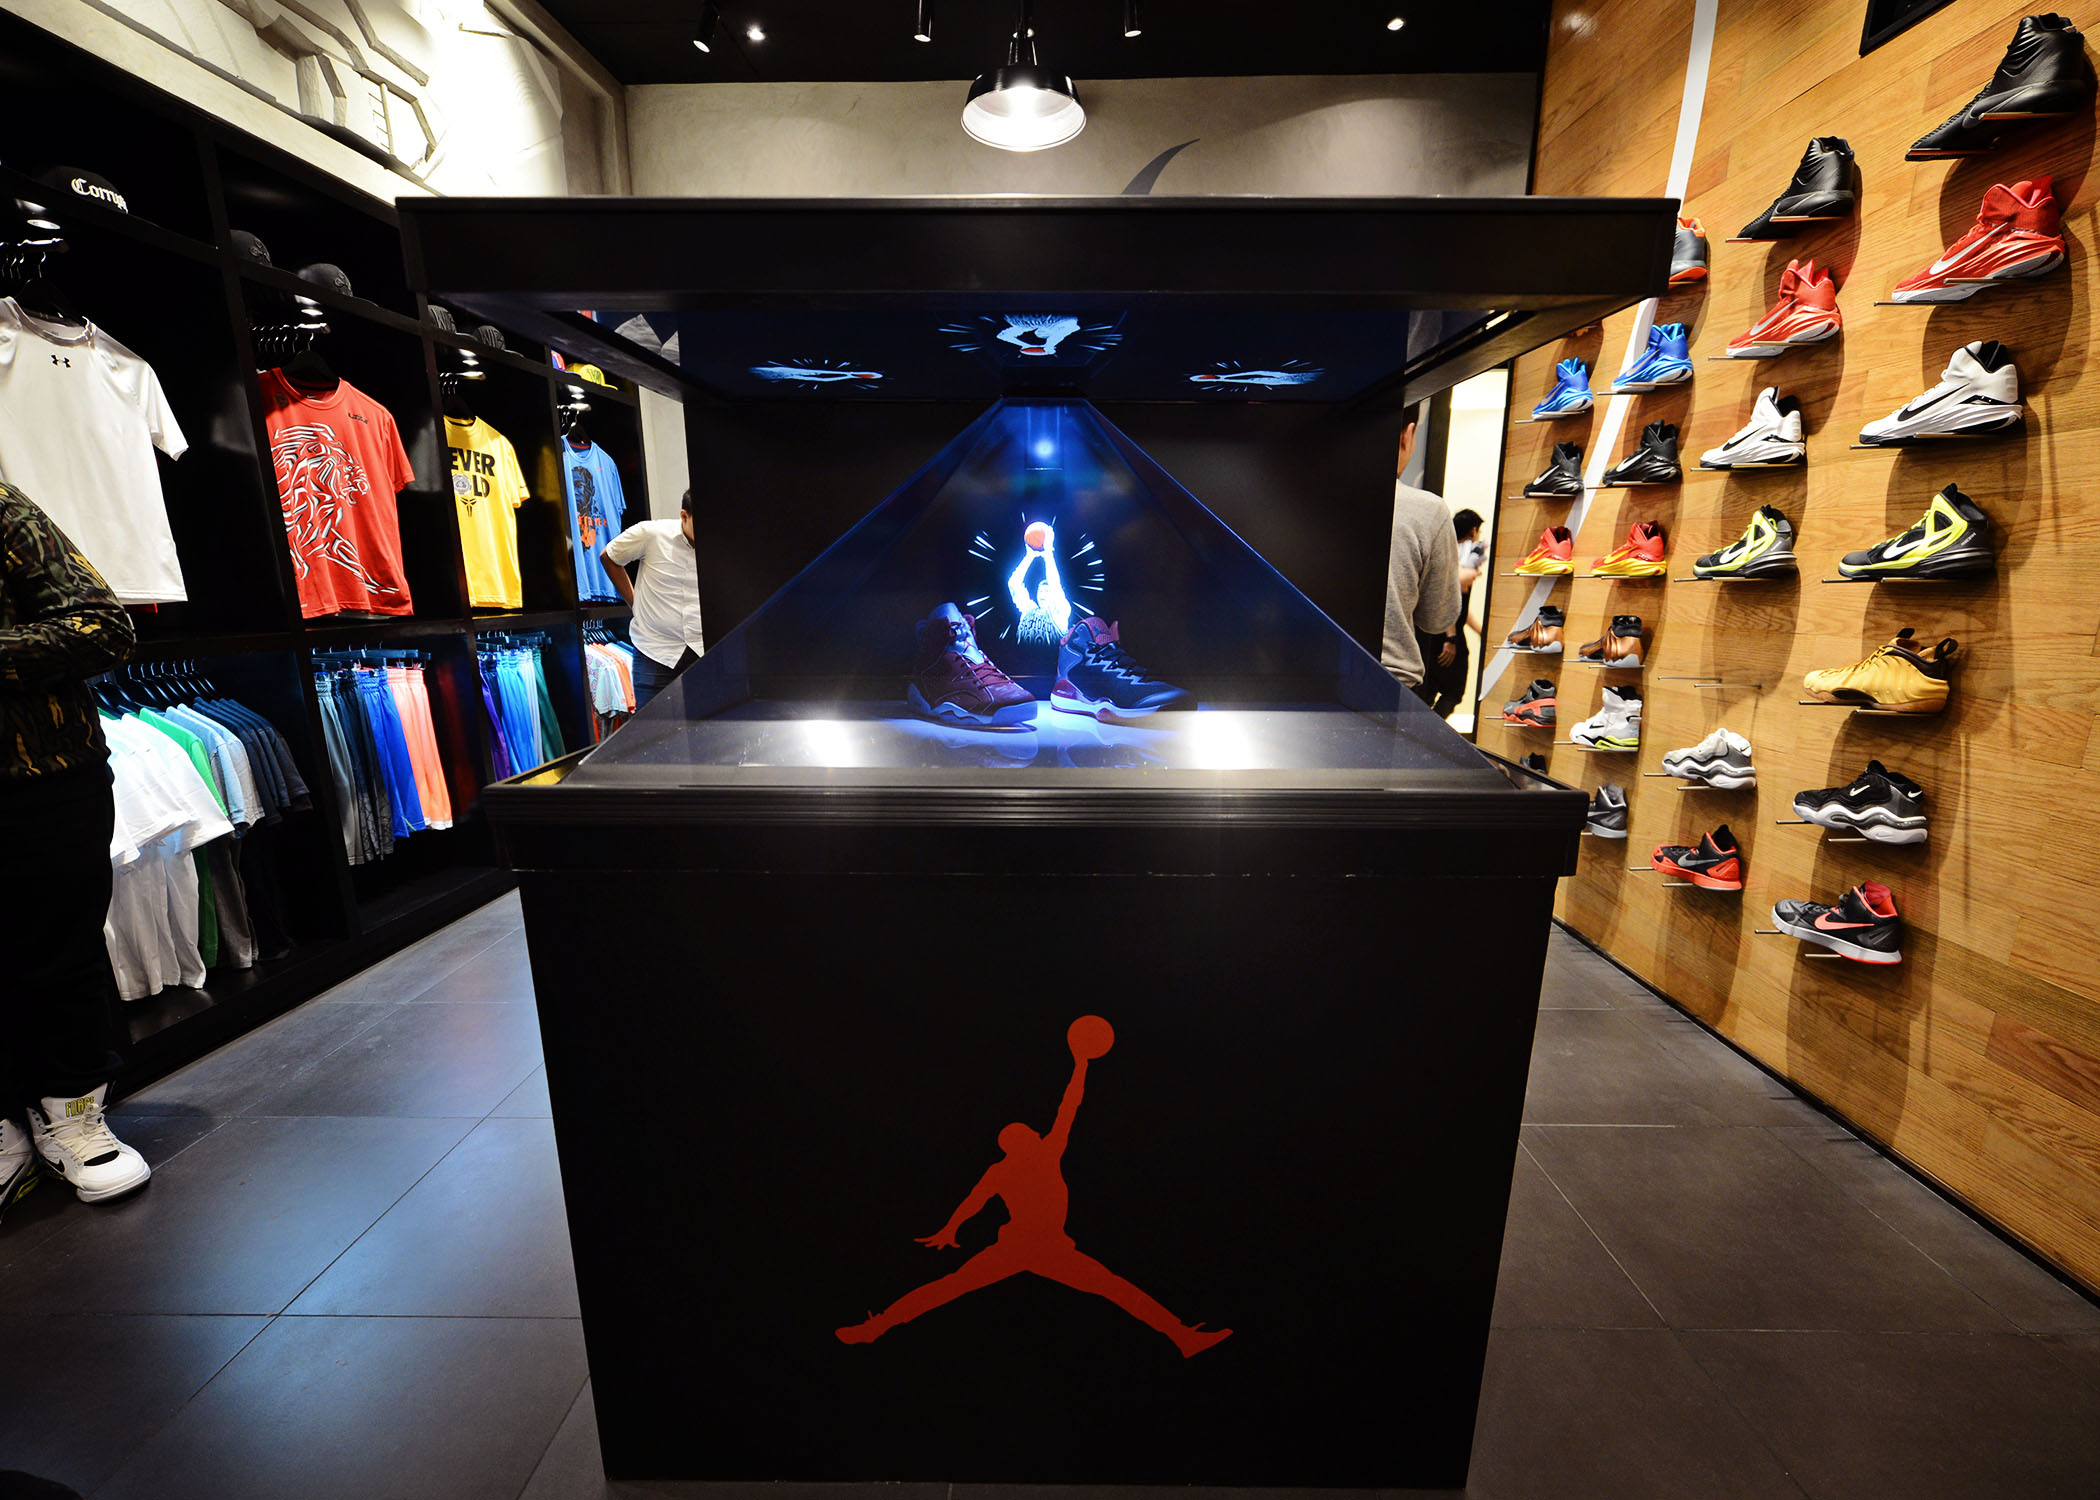 The Jordan 6 Retro and Super.Fly 3 'Slam Dunk' edition on display